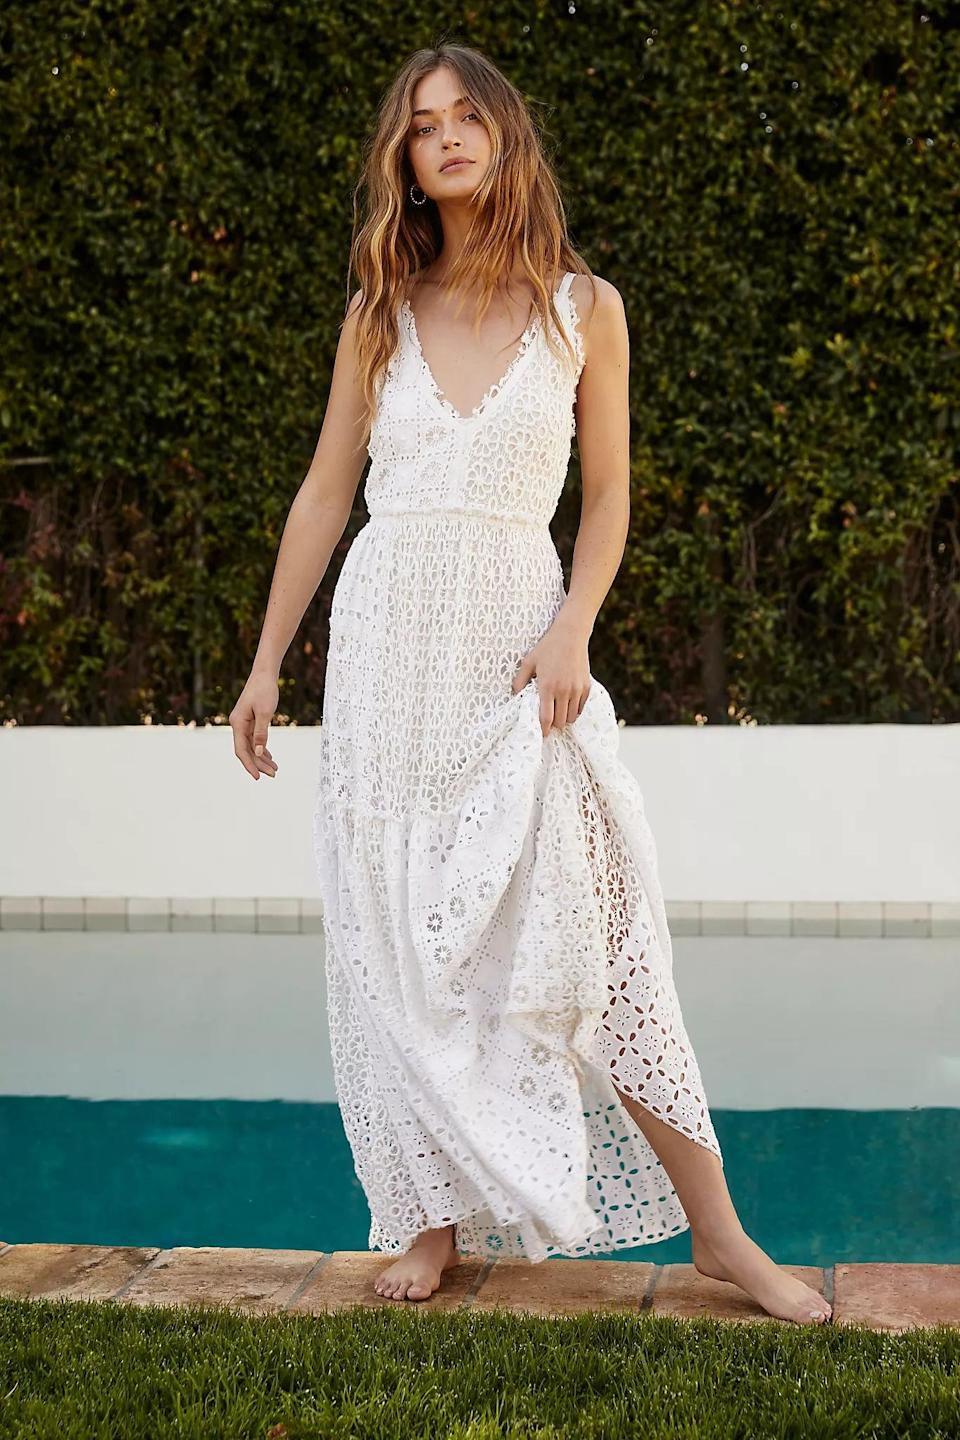 """<p>Put on a pair of heels or casual flip flops and rock this <a href=""""https://www.popsugar.com/buy/FP-One-Yesenia-Dress-579975?p_name=FP%20One%20Yesenia%20Dress&retailer=freepeople.com&pid=579975&price=350&evar1=fab%3Aus&evar9=33517892&evar98=https%3A%2F%2Fwww.popsugar.com%2Ffashion%2Fphoto-gallery%2F33517892%2Fimage%2F47532447%2FFP-One-Yesenia-Dress&list1=shopping%2Csummer%2Clace%2Csummer%20fashion&prop13=api&pdata=1"""" class=""""link rapid-noclick-resp"""" rel=""""nofollow noopener"""" target=""""_blank"""" data-ylk=""""slk:FP One Yesenia Dress"""">FP One Yesenia Dress</a> ($350).</p>"""